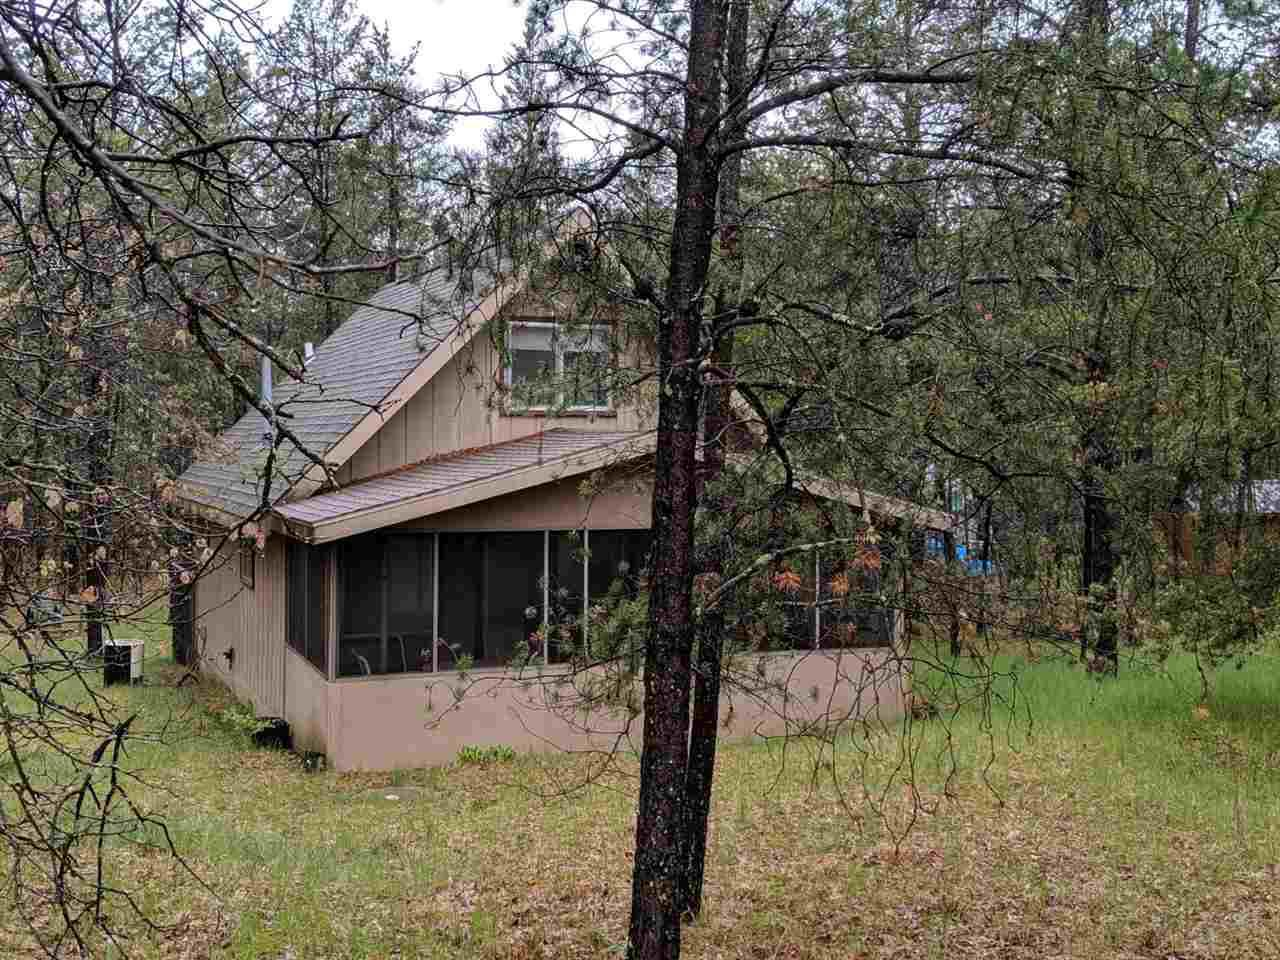 Nestled in the trees, a 2 bedroom, 2 bath cabin within a mile of Castle Rock Lake. Cabin comes fully furnished and ready for you to move in. Large deck to sit and relax or to have friends and family come over and enjoy a cook out. A storage shed for toys. Come enjoy all that Adams County has to offer: fishing, boating, golf, ATV and snowmobile trails, horseback riding. Within 30 miles of Wisconsin Dells. This is the perfect getaway.